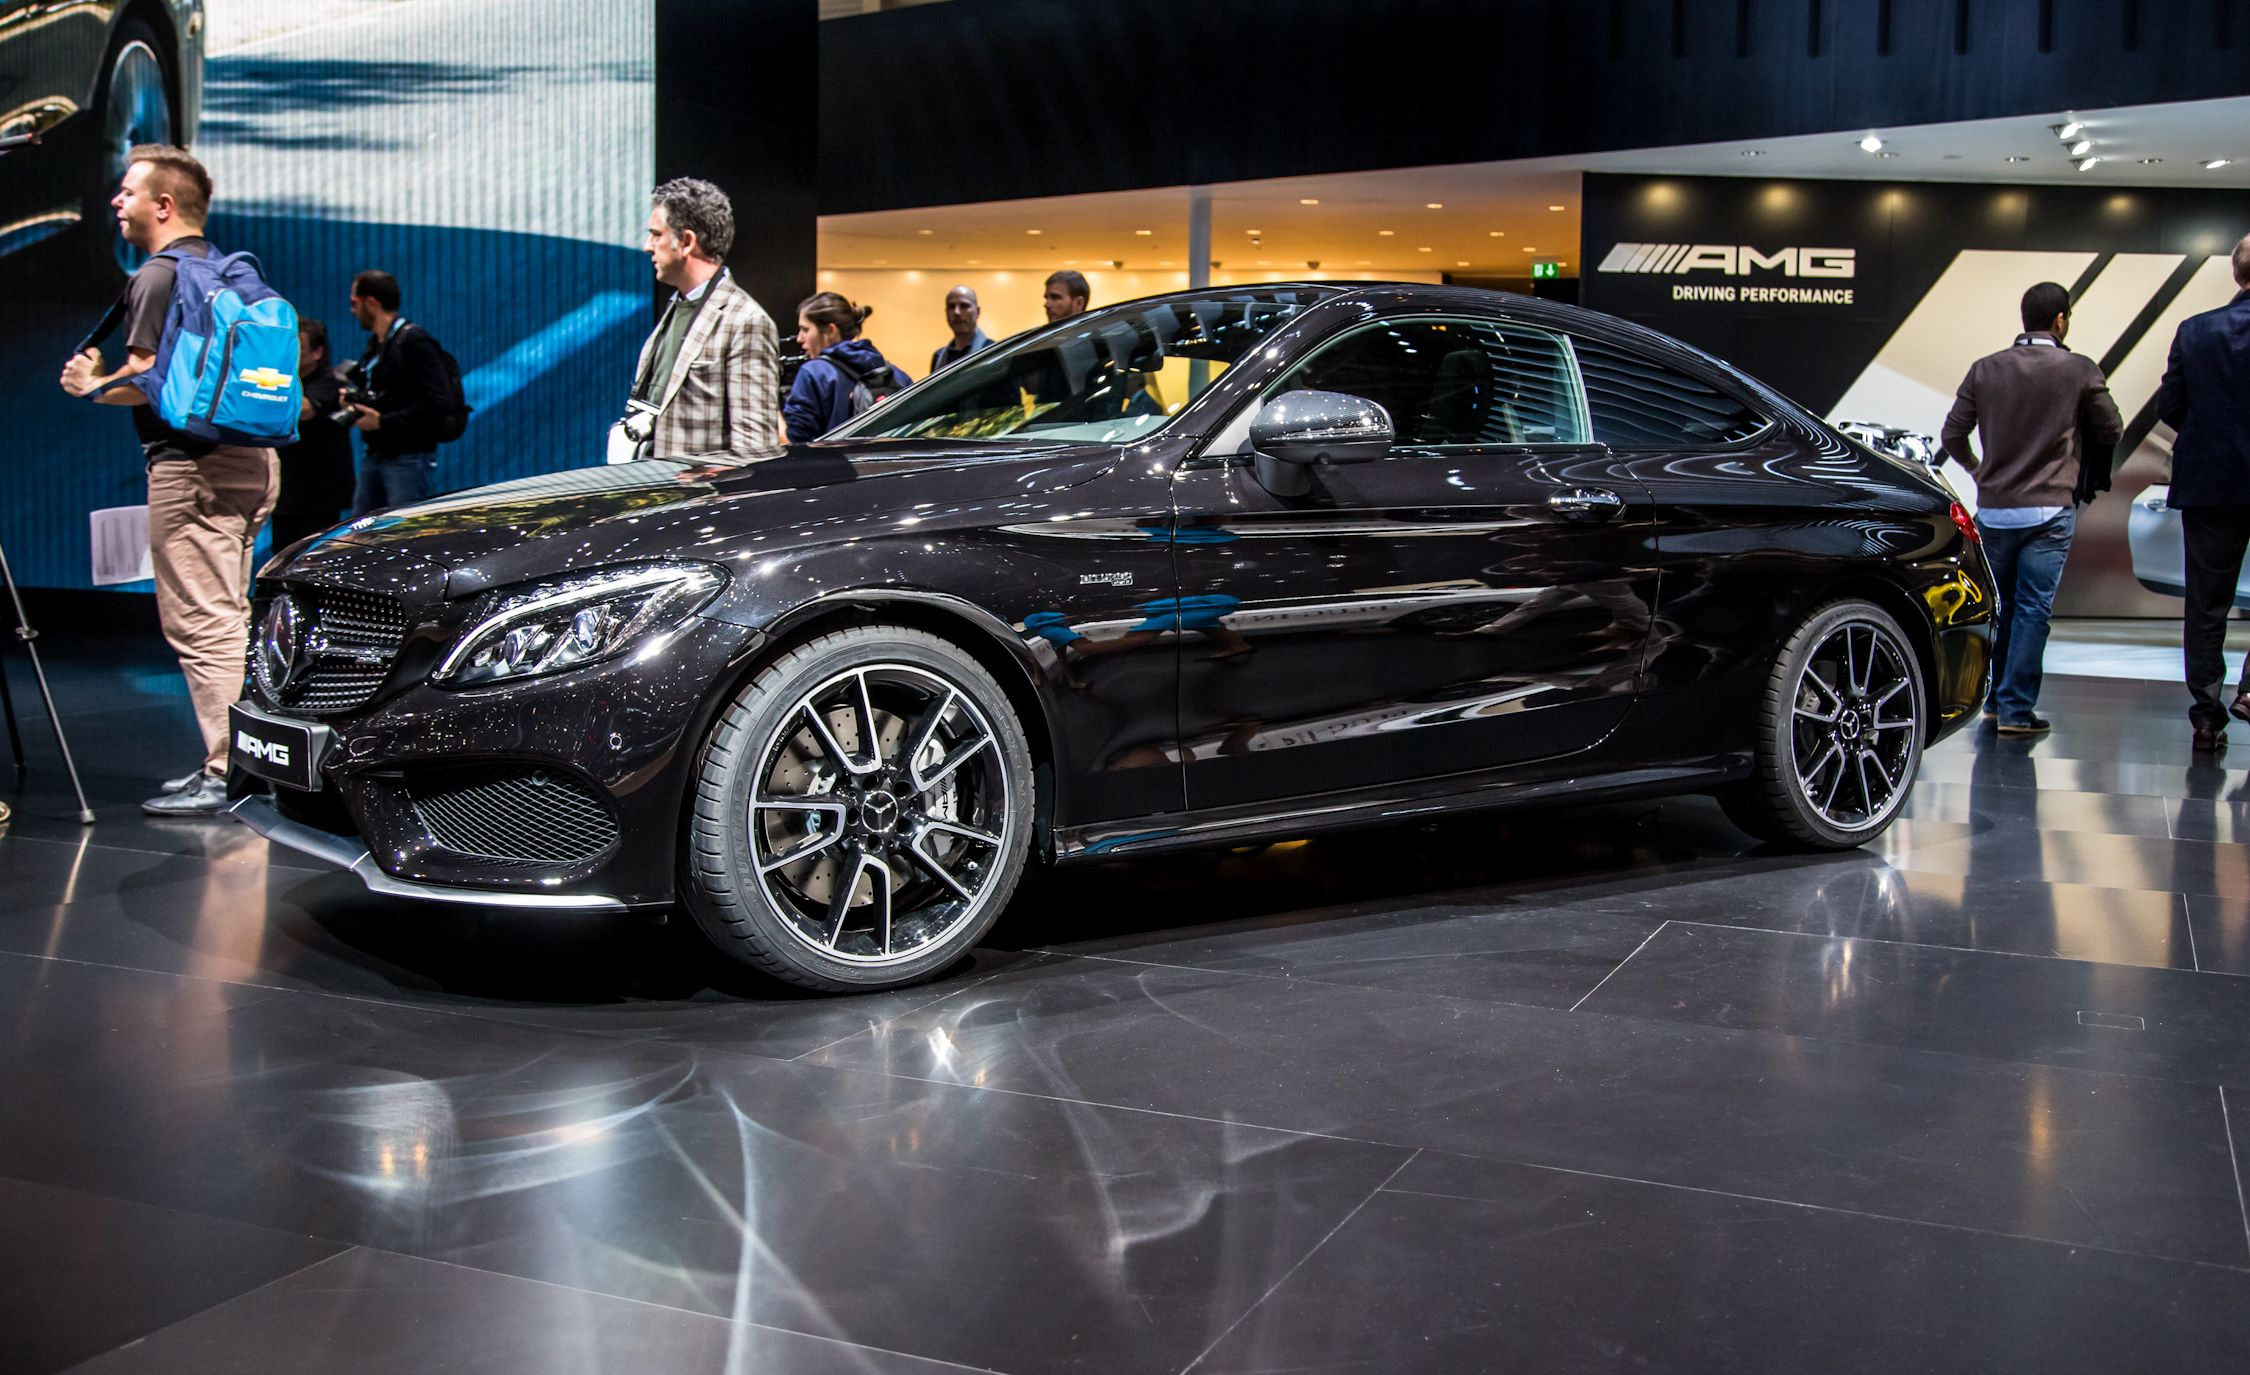 2017 mercedes benz amg c43 sedan best new cars for 2018 for 2017 mercedes benz amg c43 coupe